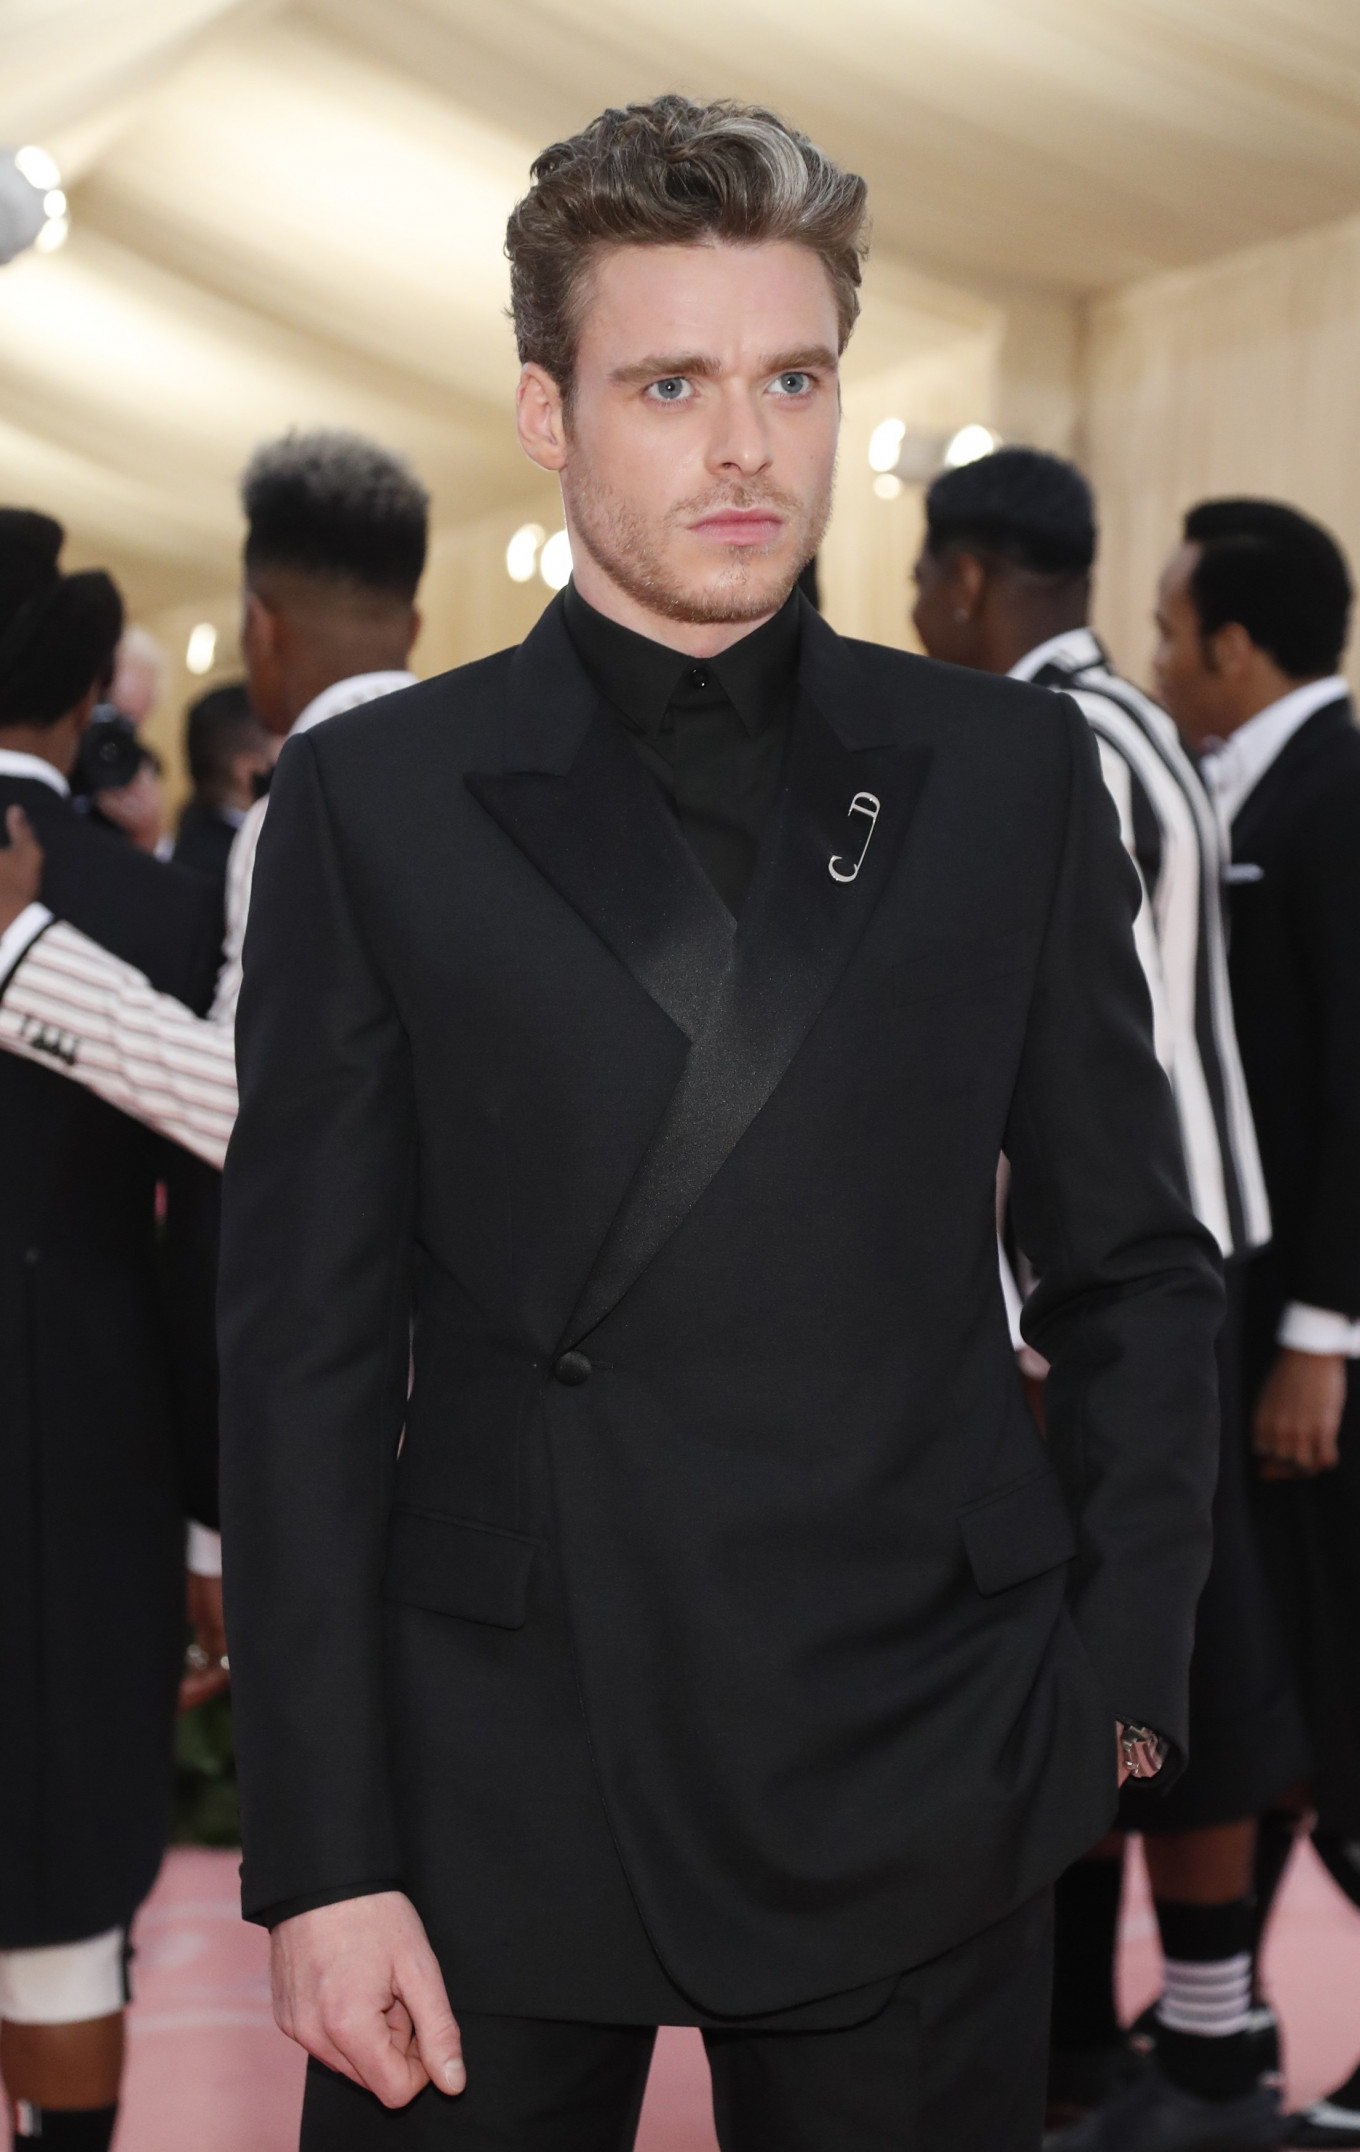 Richard Madden at the Metropolitan Museum of Art Costume Institute Gala in New York City, US, on May 6, 2019.